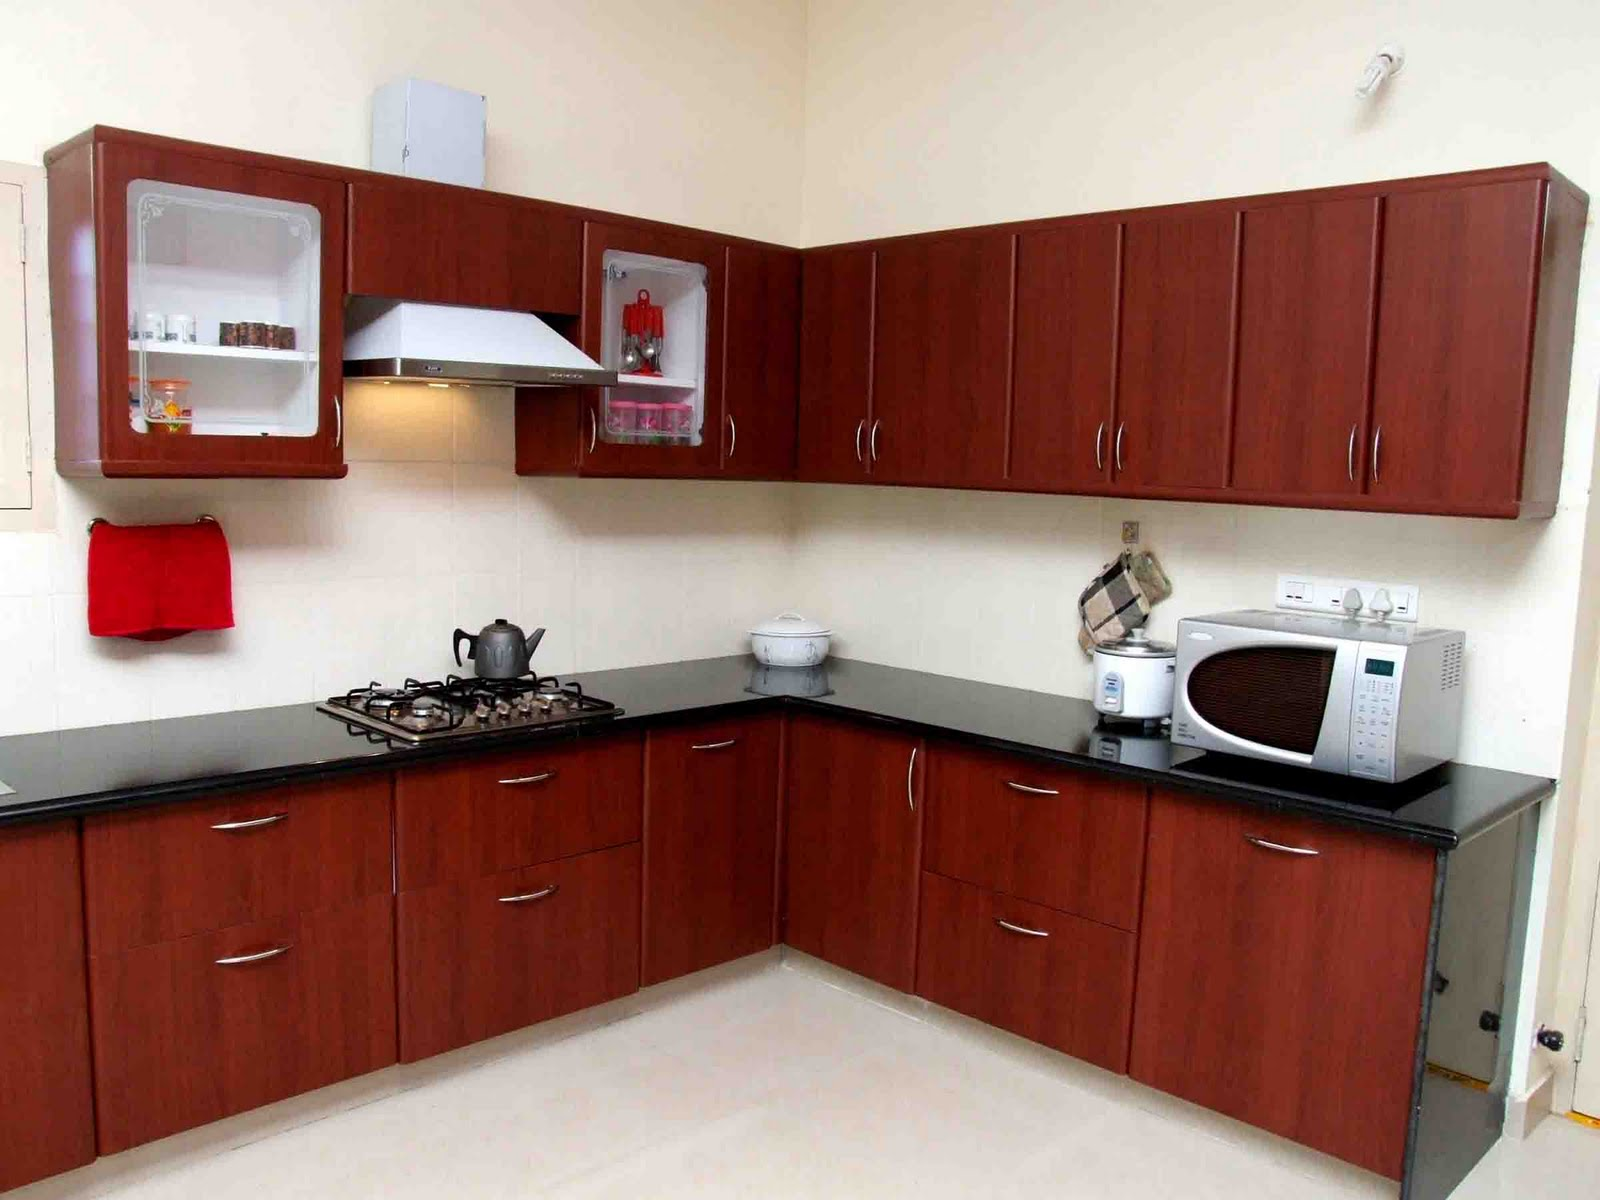 Interio Sofa Utopia Kitchen Small Indian Kitchen Design L Shaped Modular Kitchen Designs